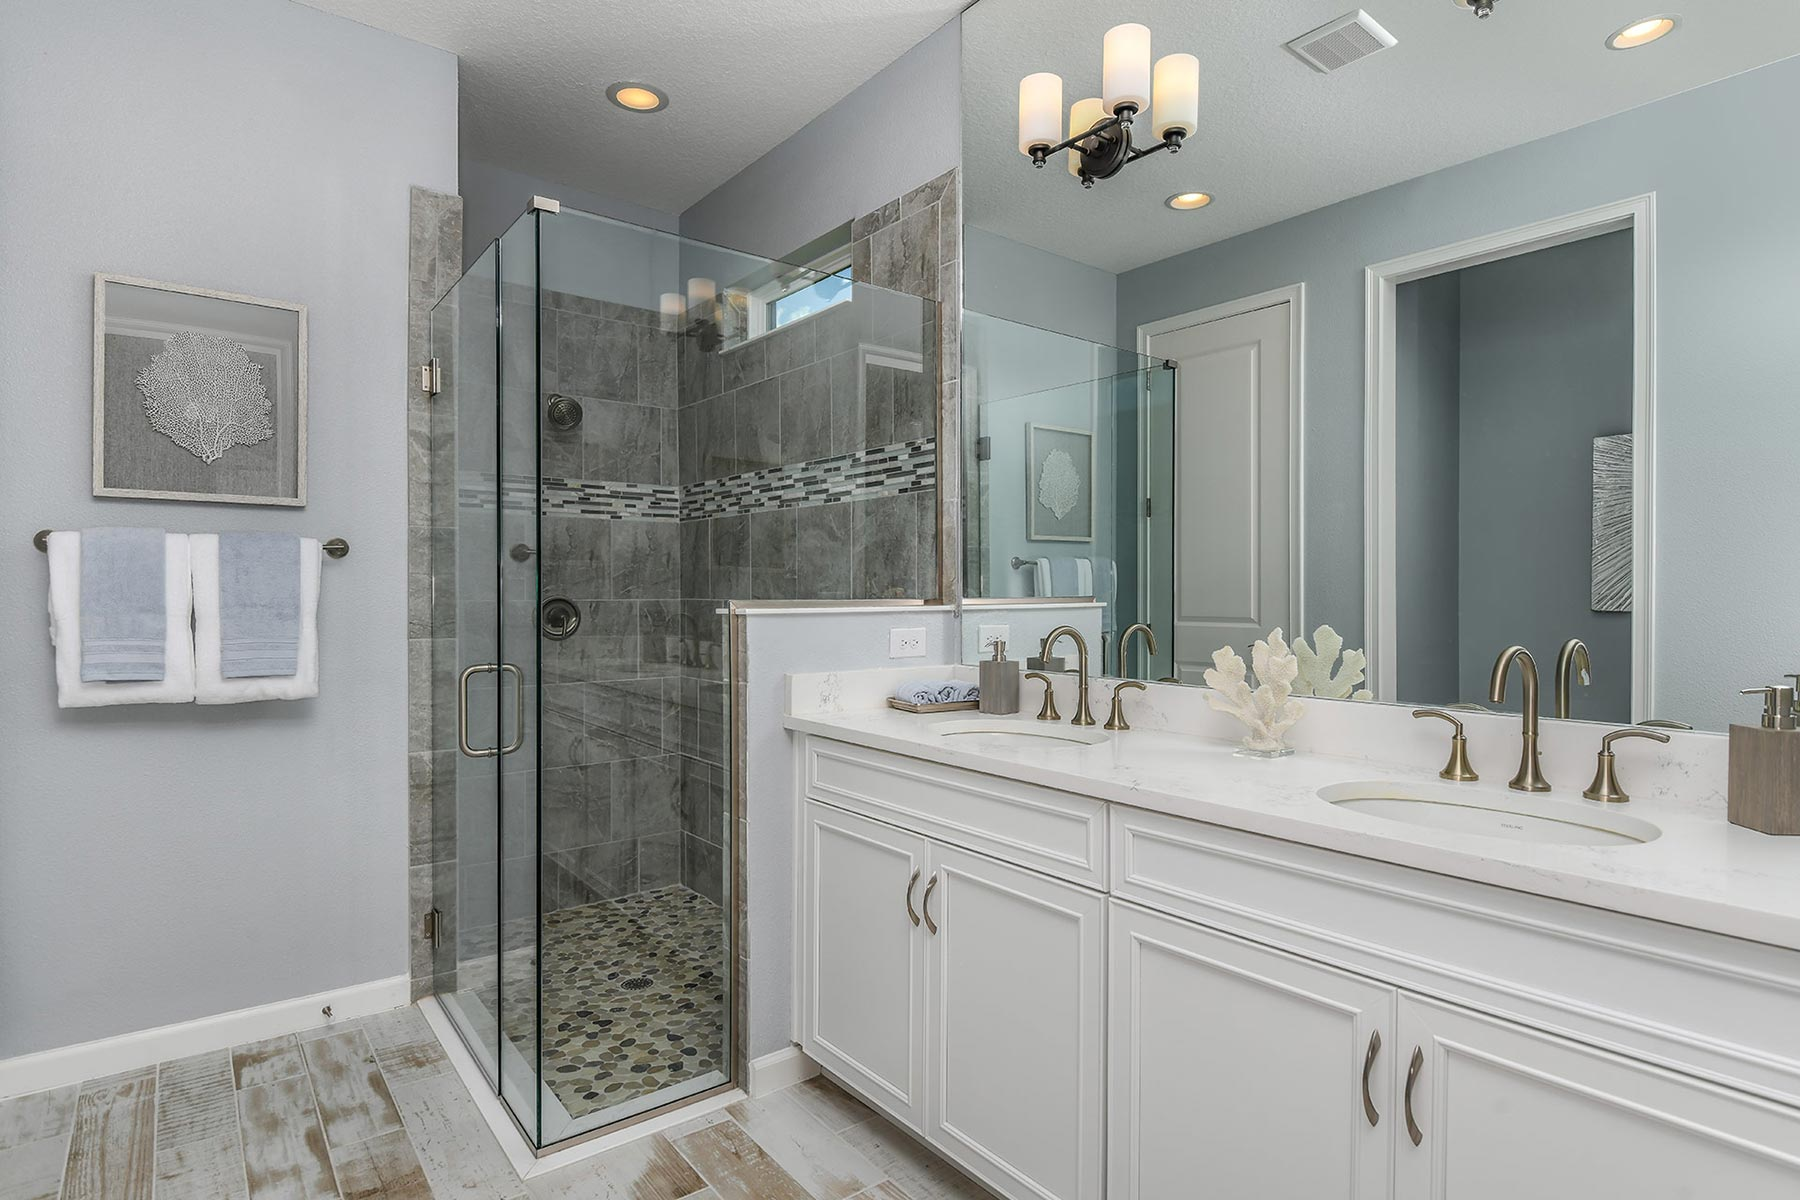 Coquina II Plan Bathroom_Master Bath at Wellen Park - Renaissance in Venice Florida by Mattamy Homes